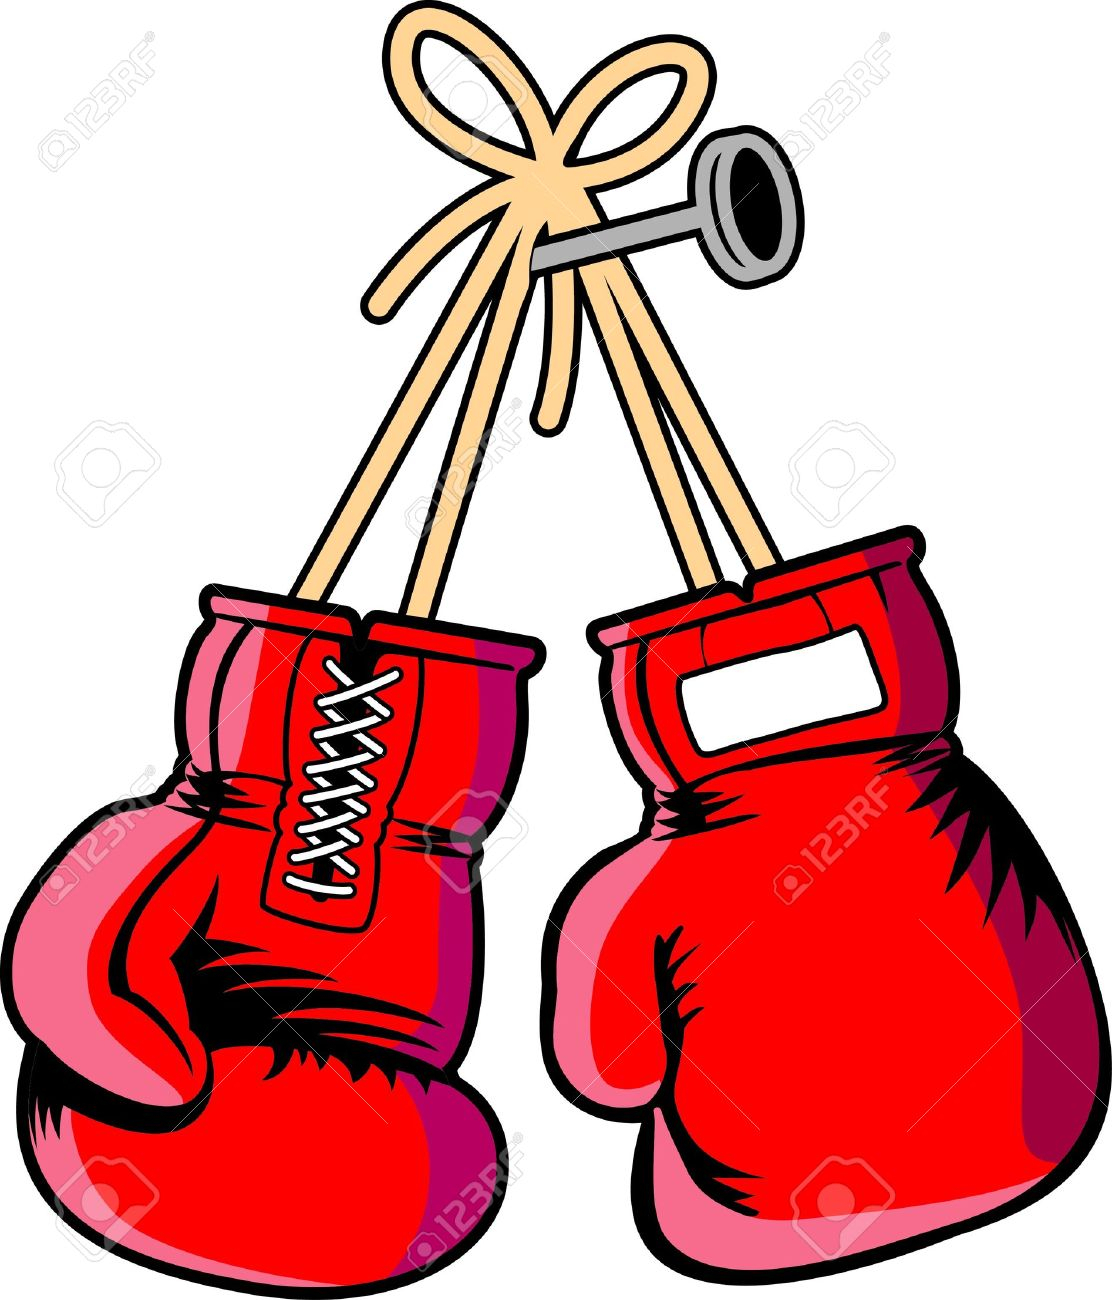 1112x1300 Sketches Of Boxing Gloves 13,290 Boxing Glove Stock Illustrations